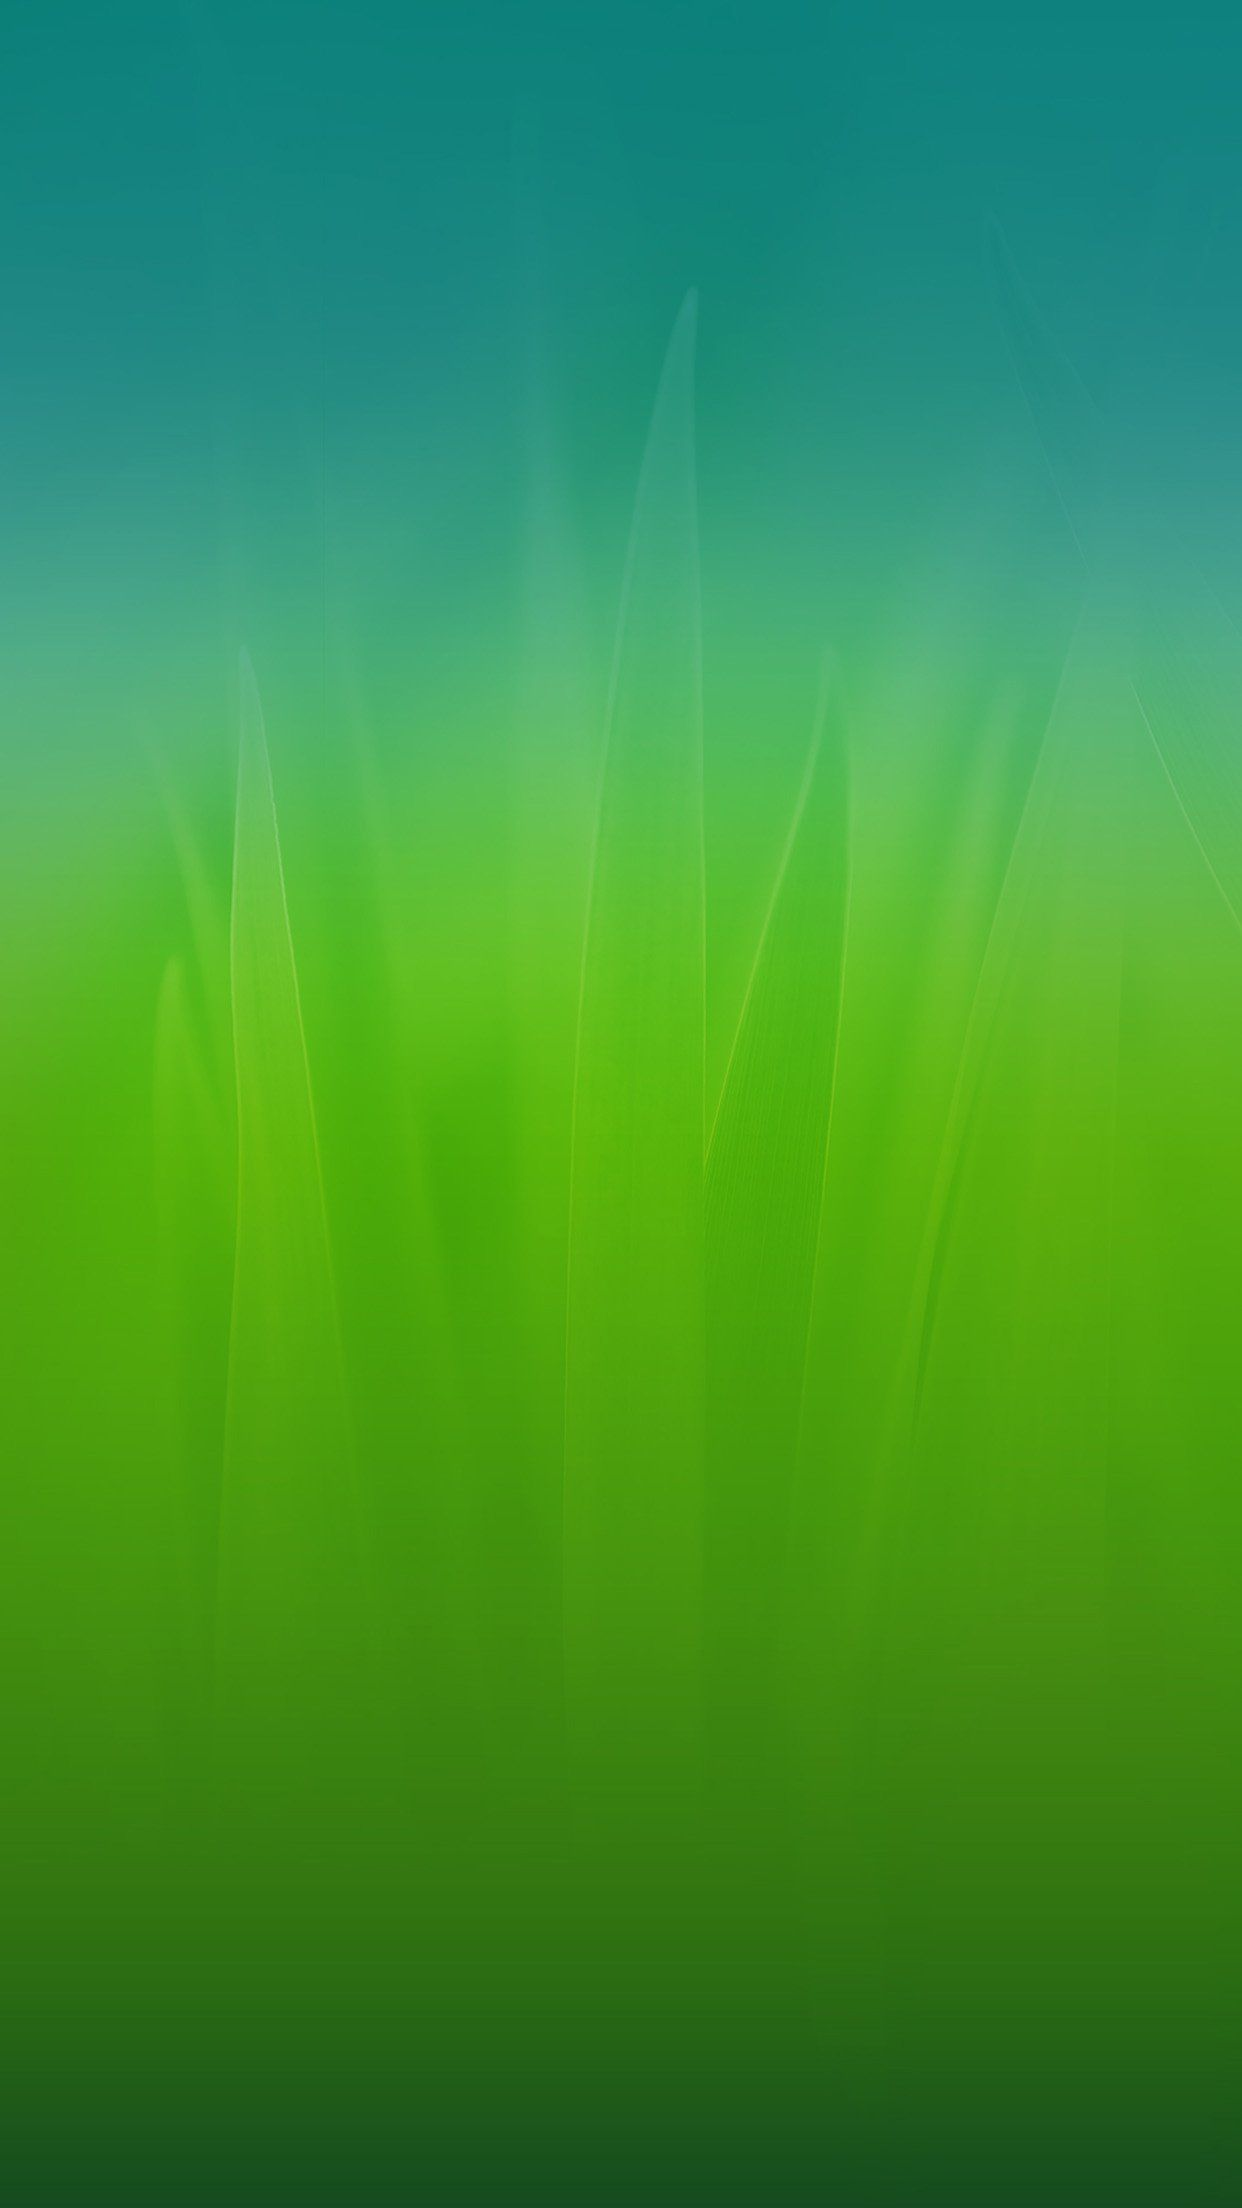 1242x2208 iPhone6papers - vj75-soft-blue-nature-green-blue-leaf-pattern